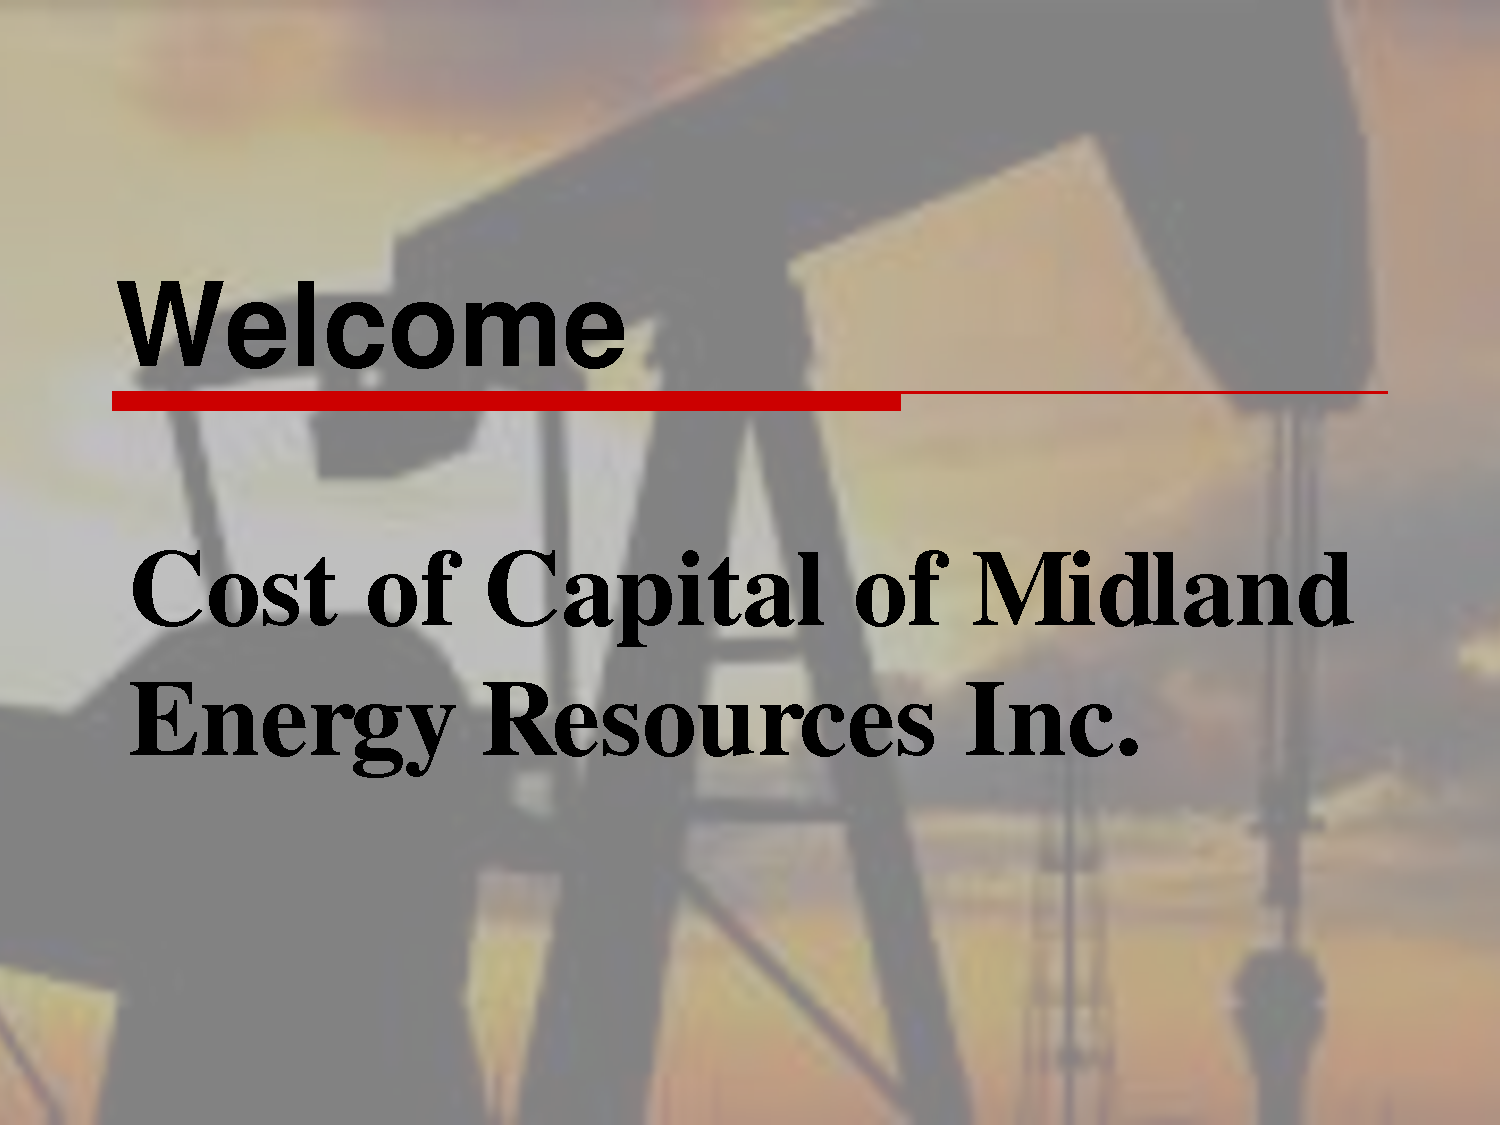 midland energy resources inc global energy Midland energy resources, inc is a global energy company, comprised of three  different operations -- oil and gas exploration and production (e&p), refining.